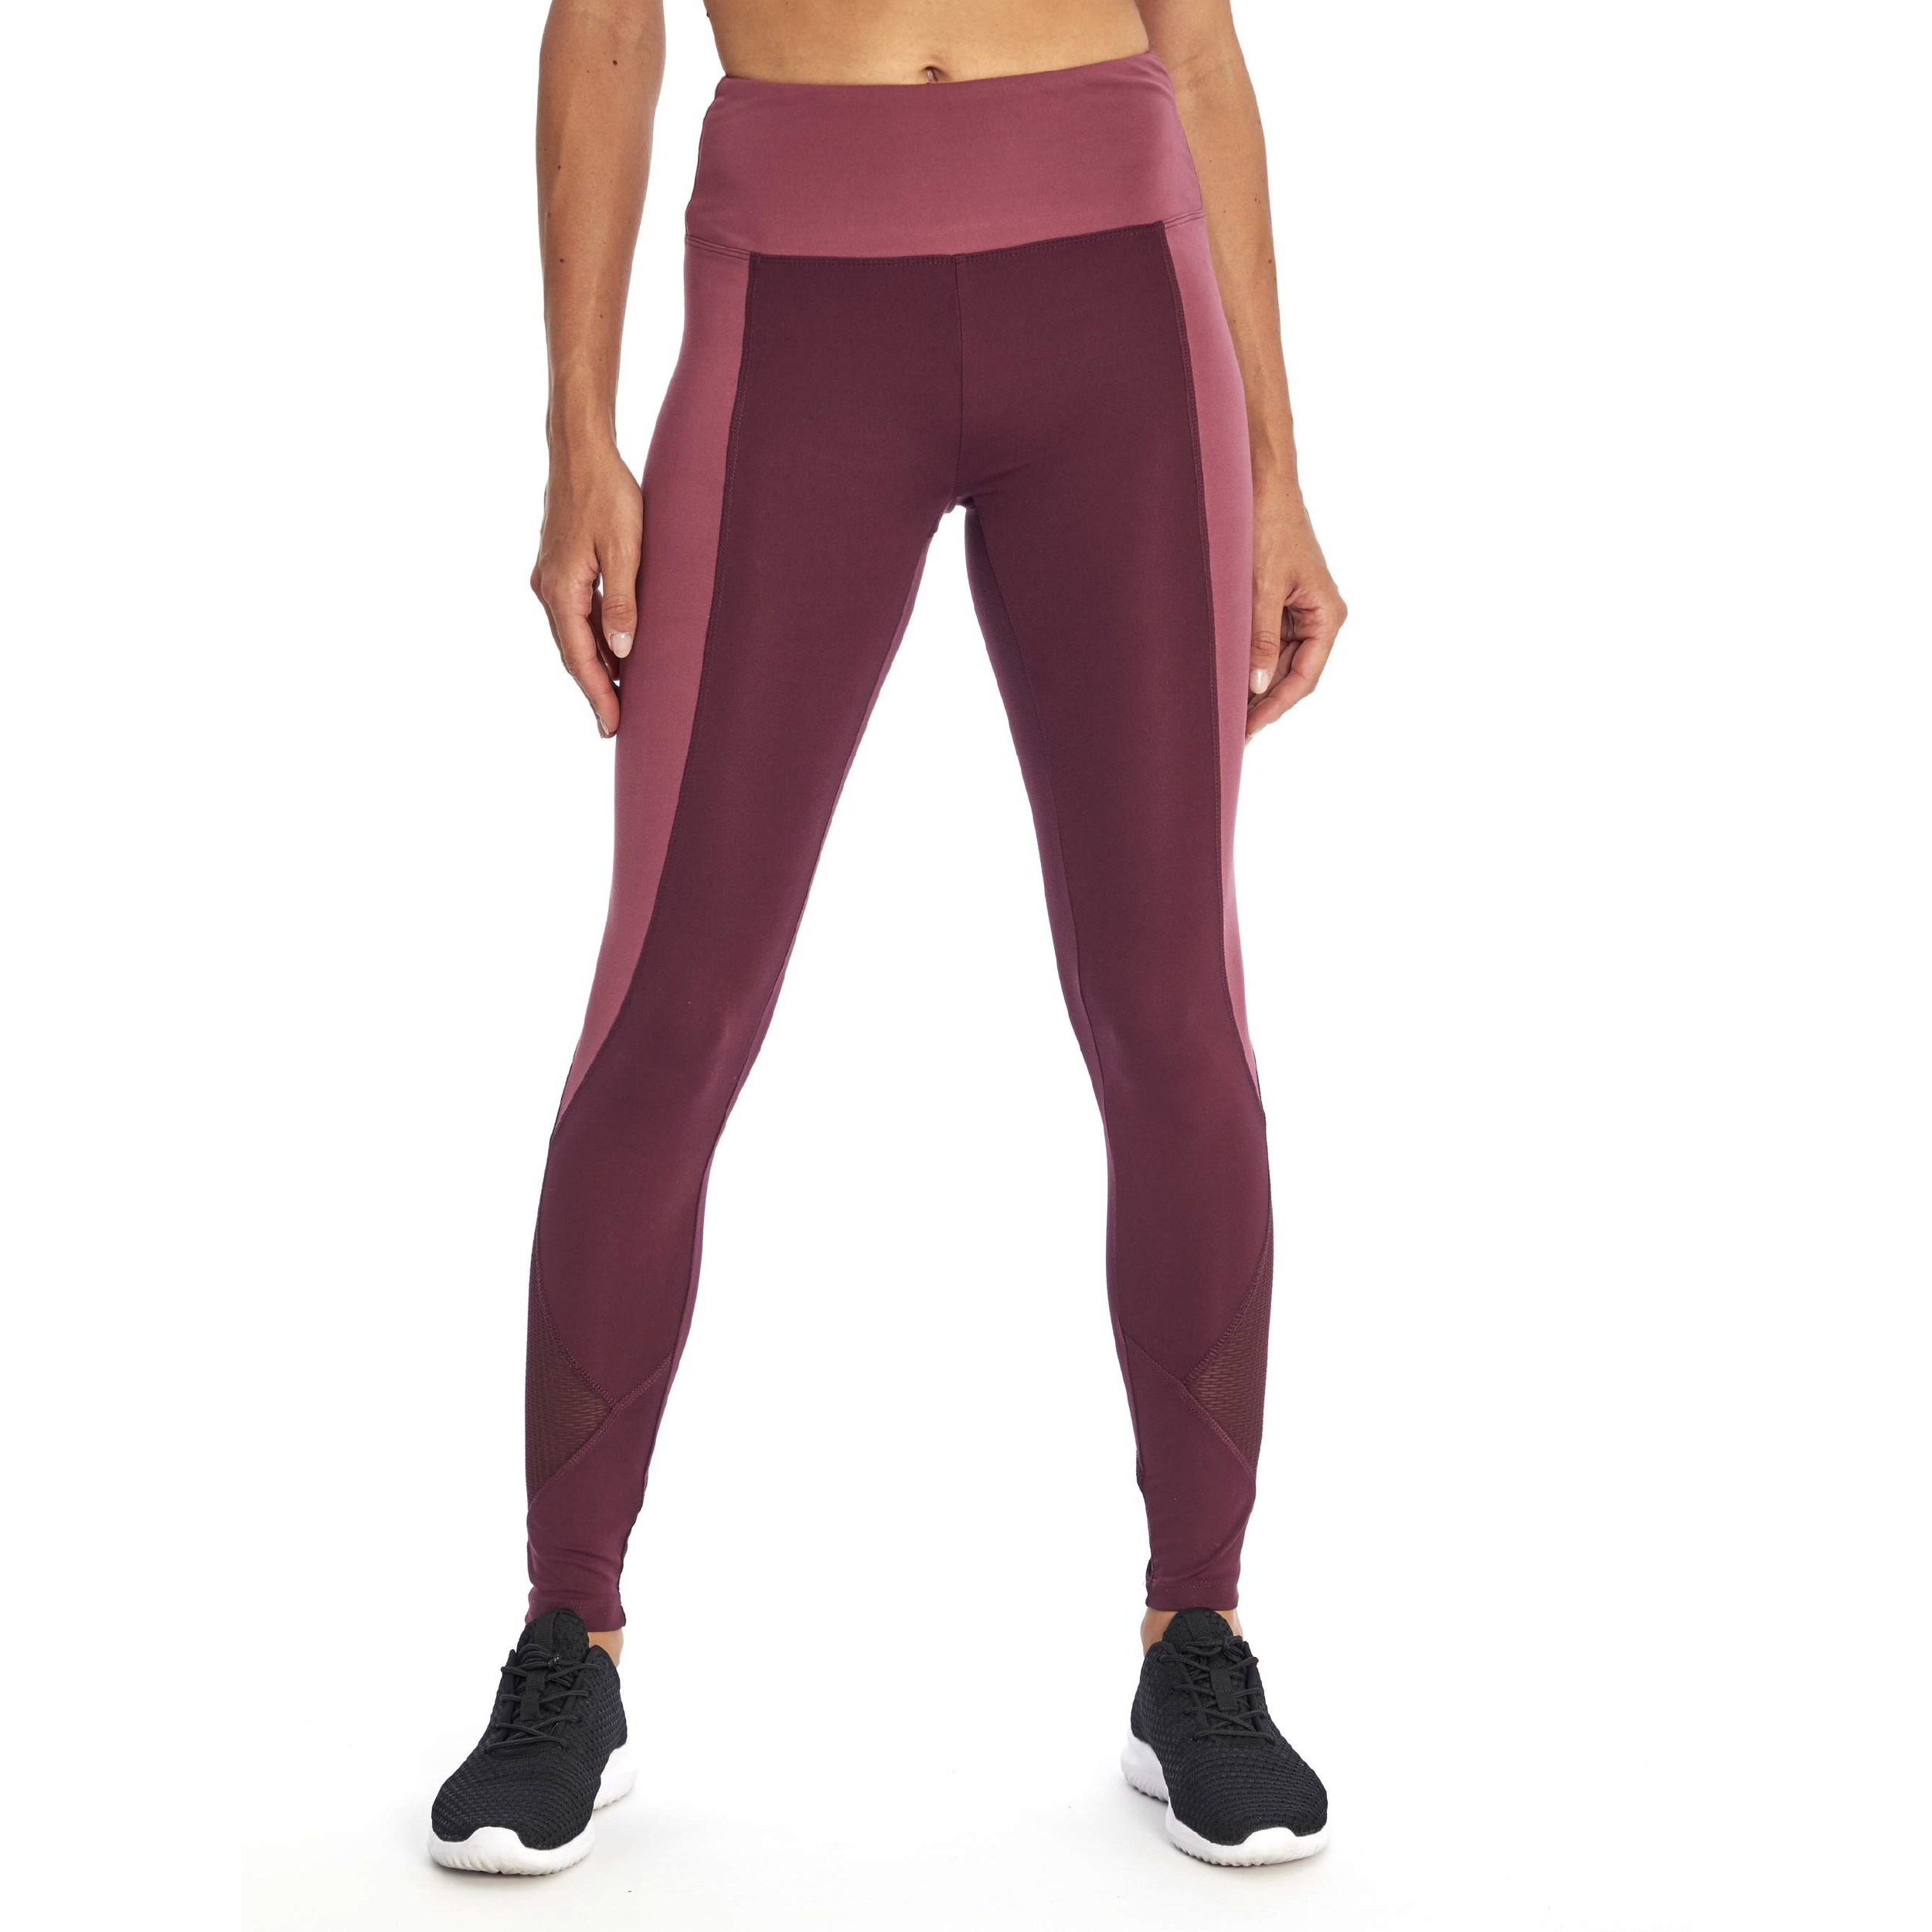 Model wearing the mauve leggings with pink side stripes